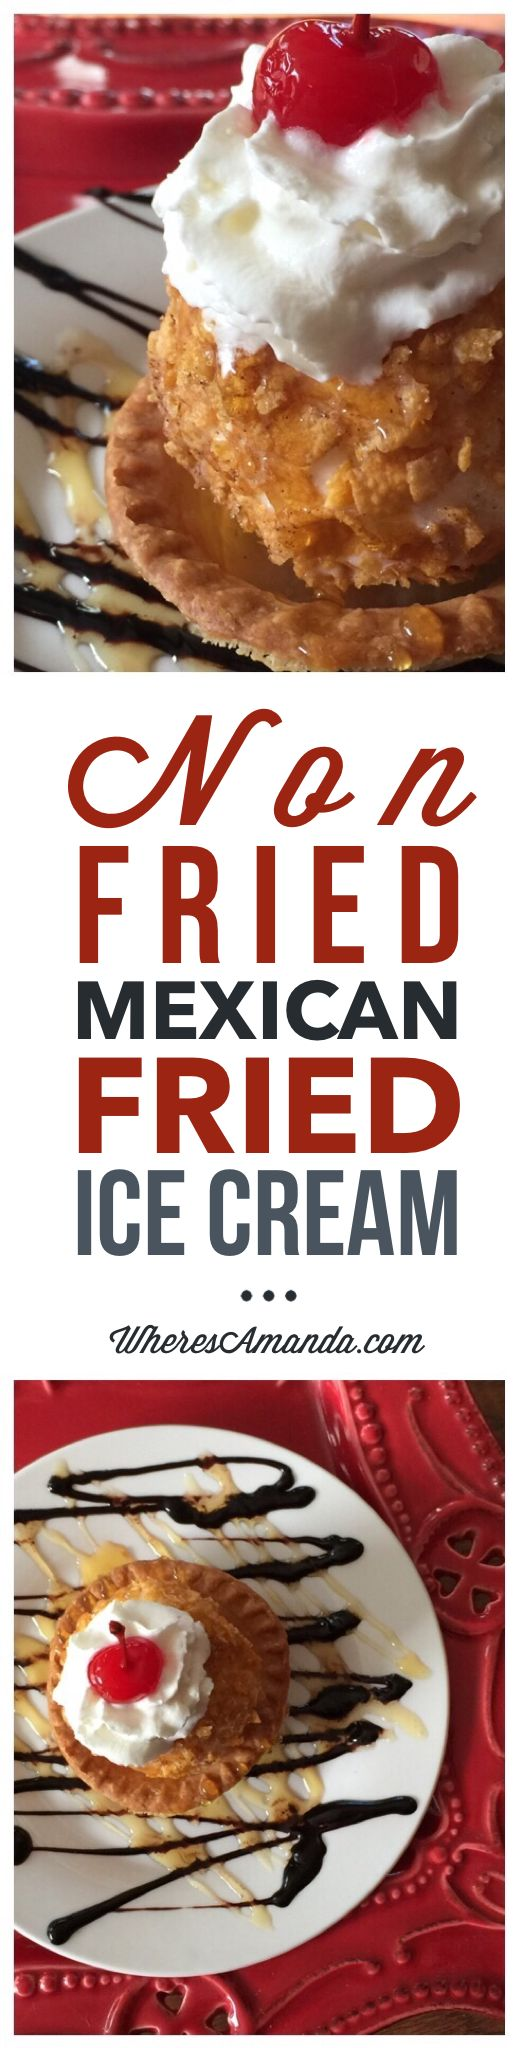 Non-Fried Mexican Fried Ice Cream